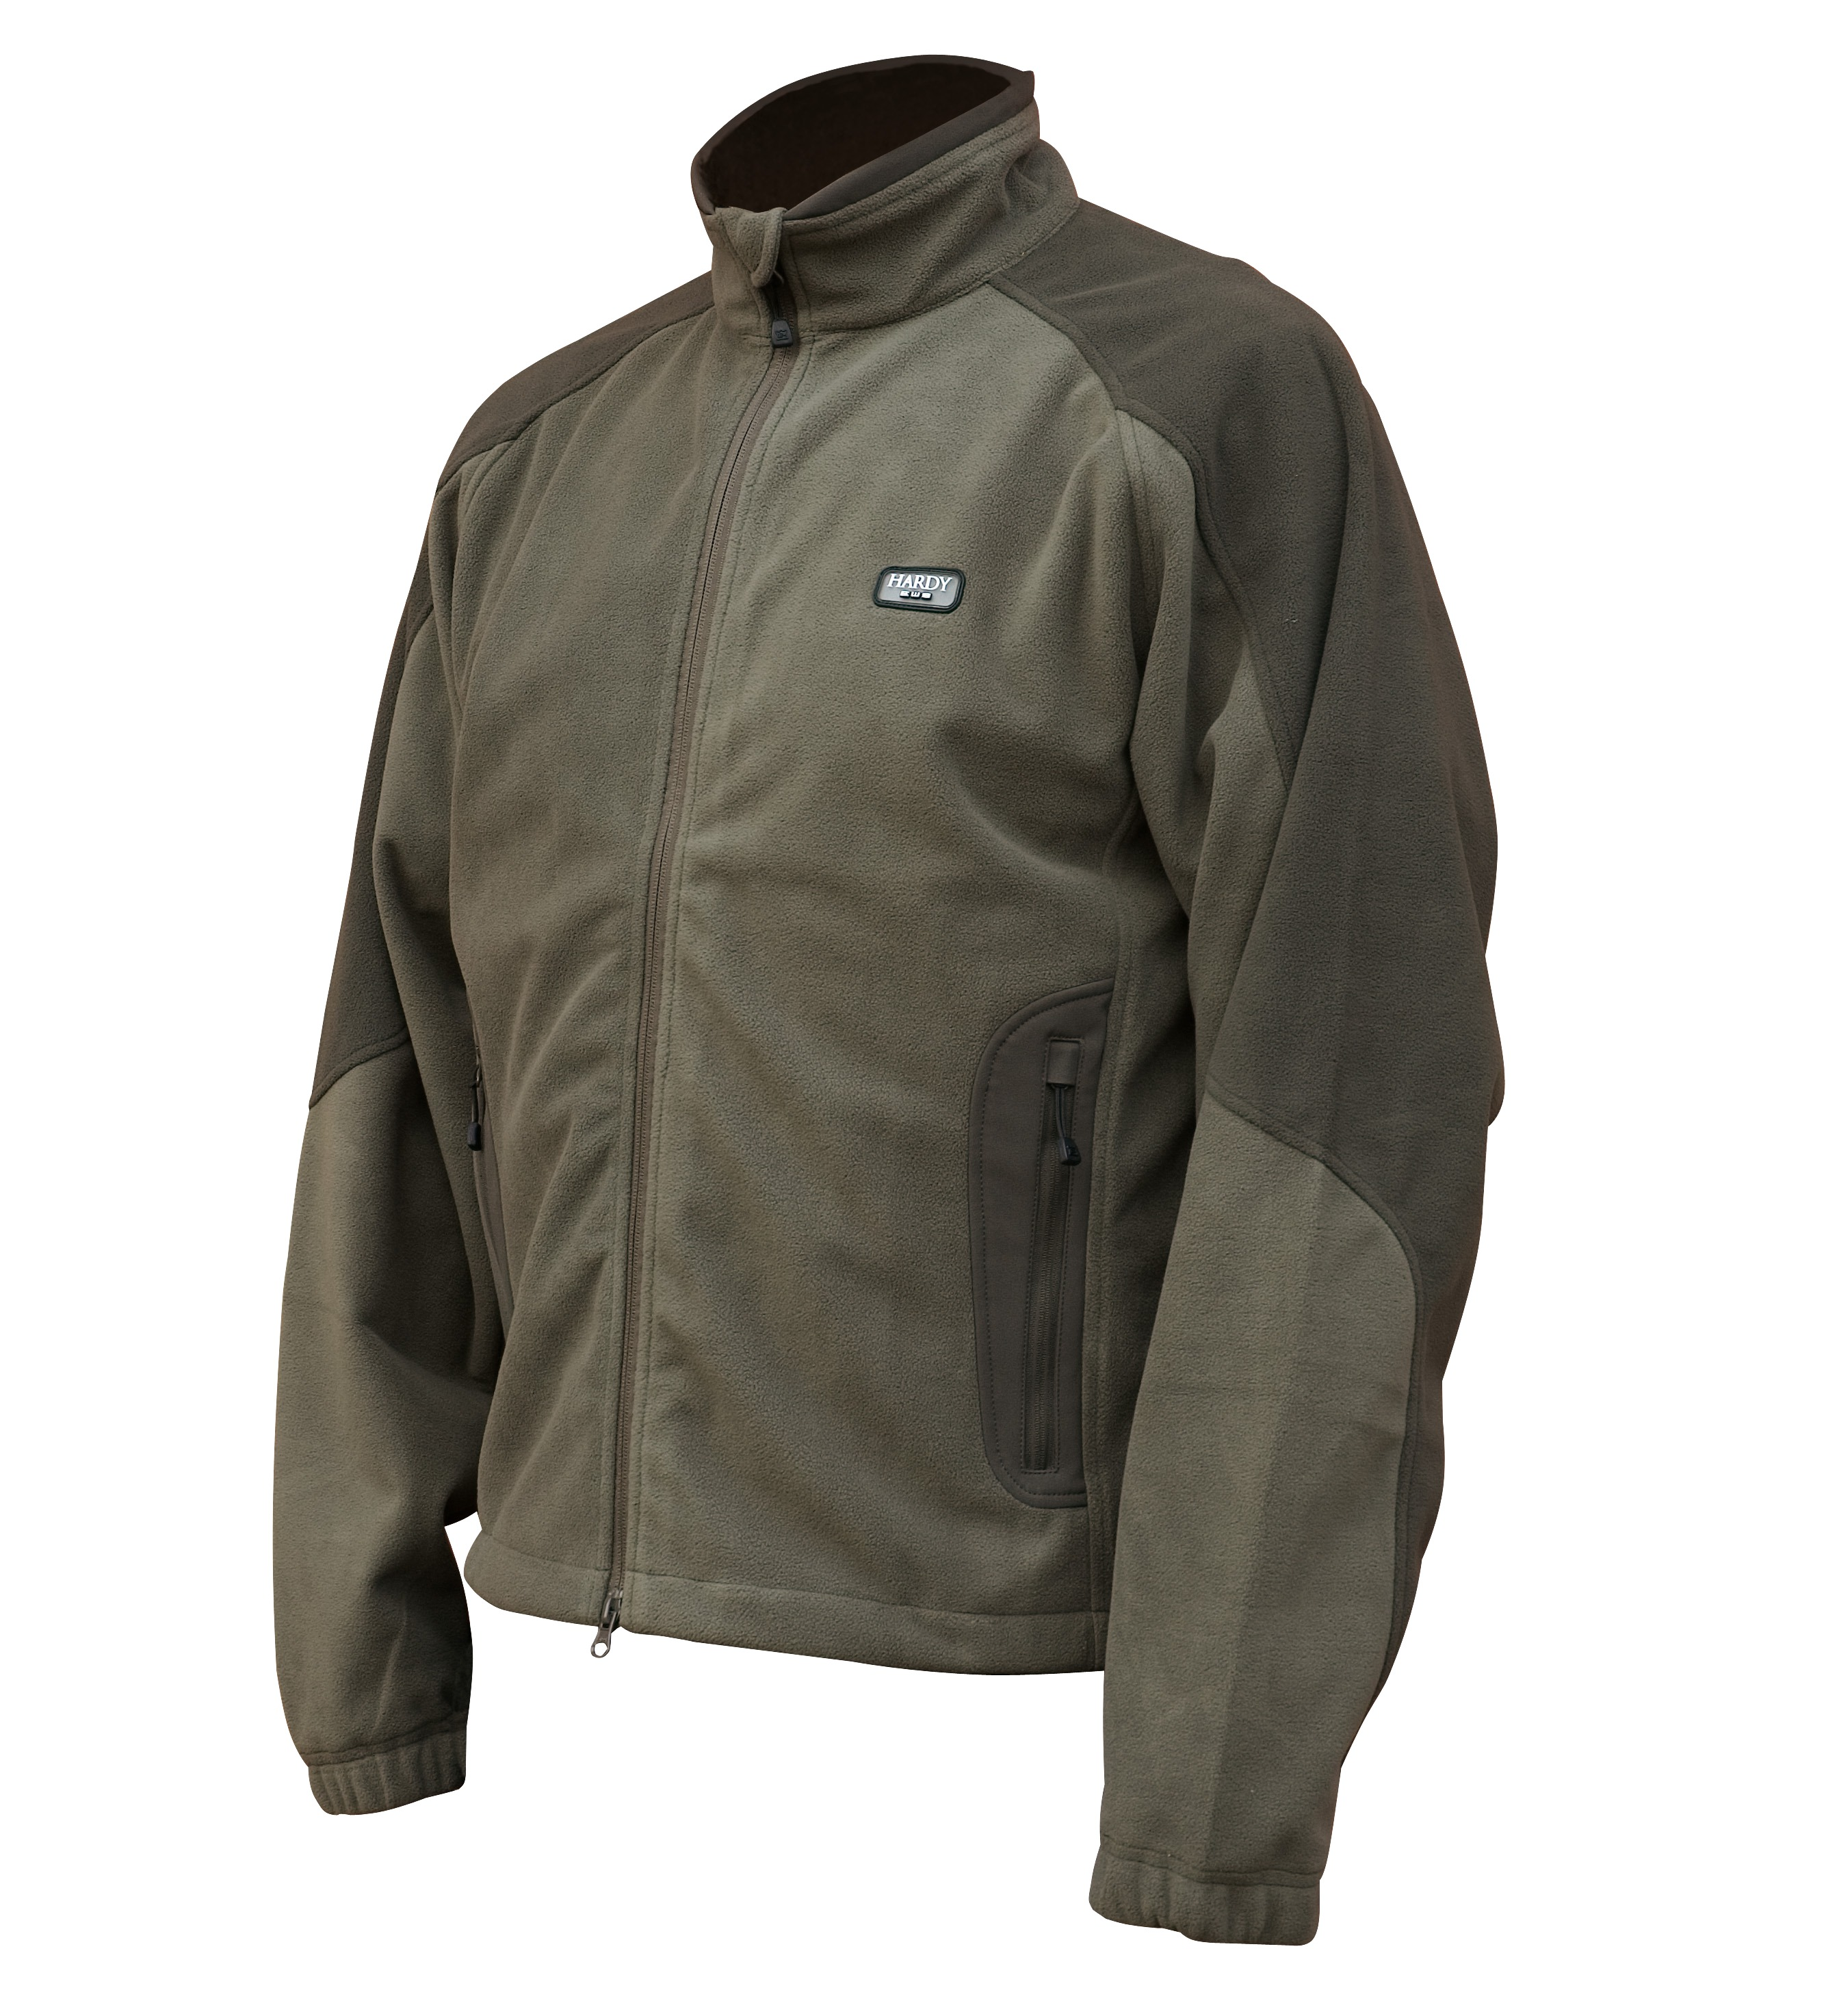 Wind Block Fleece Jacket - Best Jacket 2017